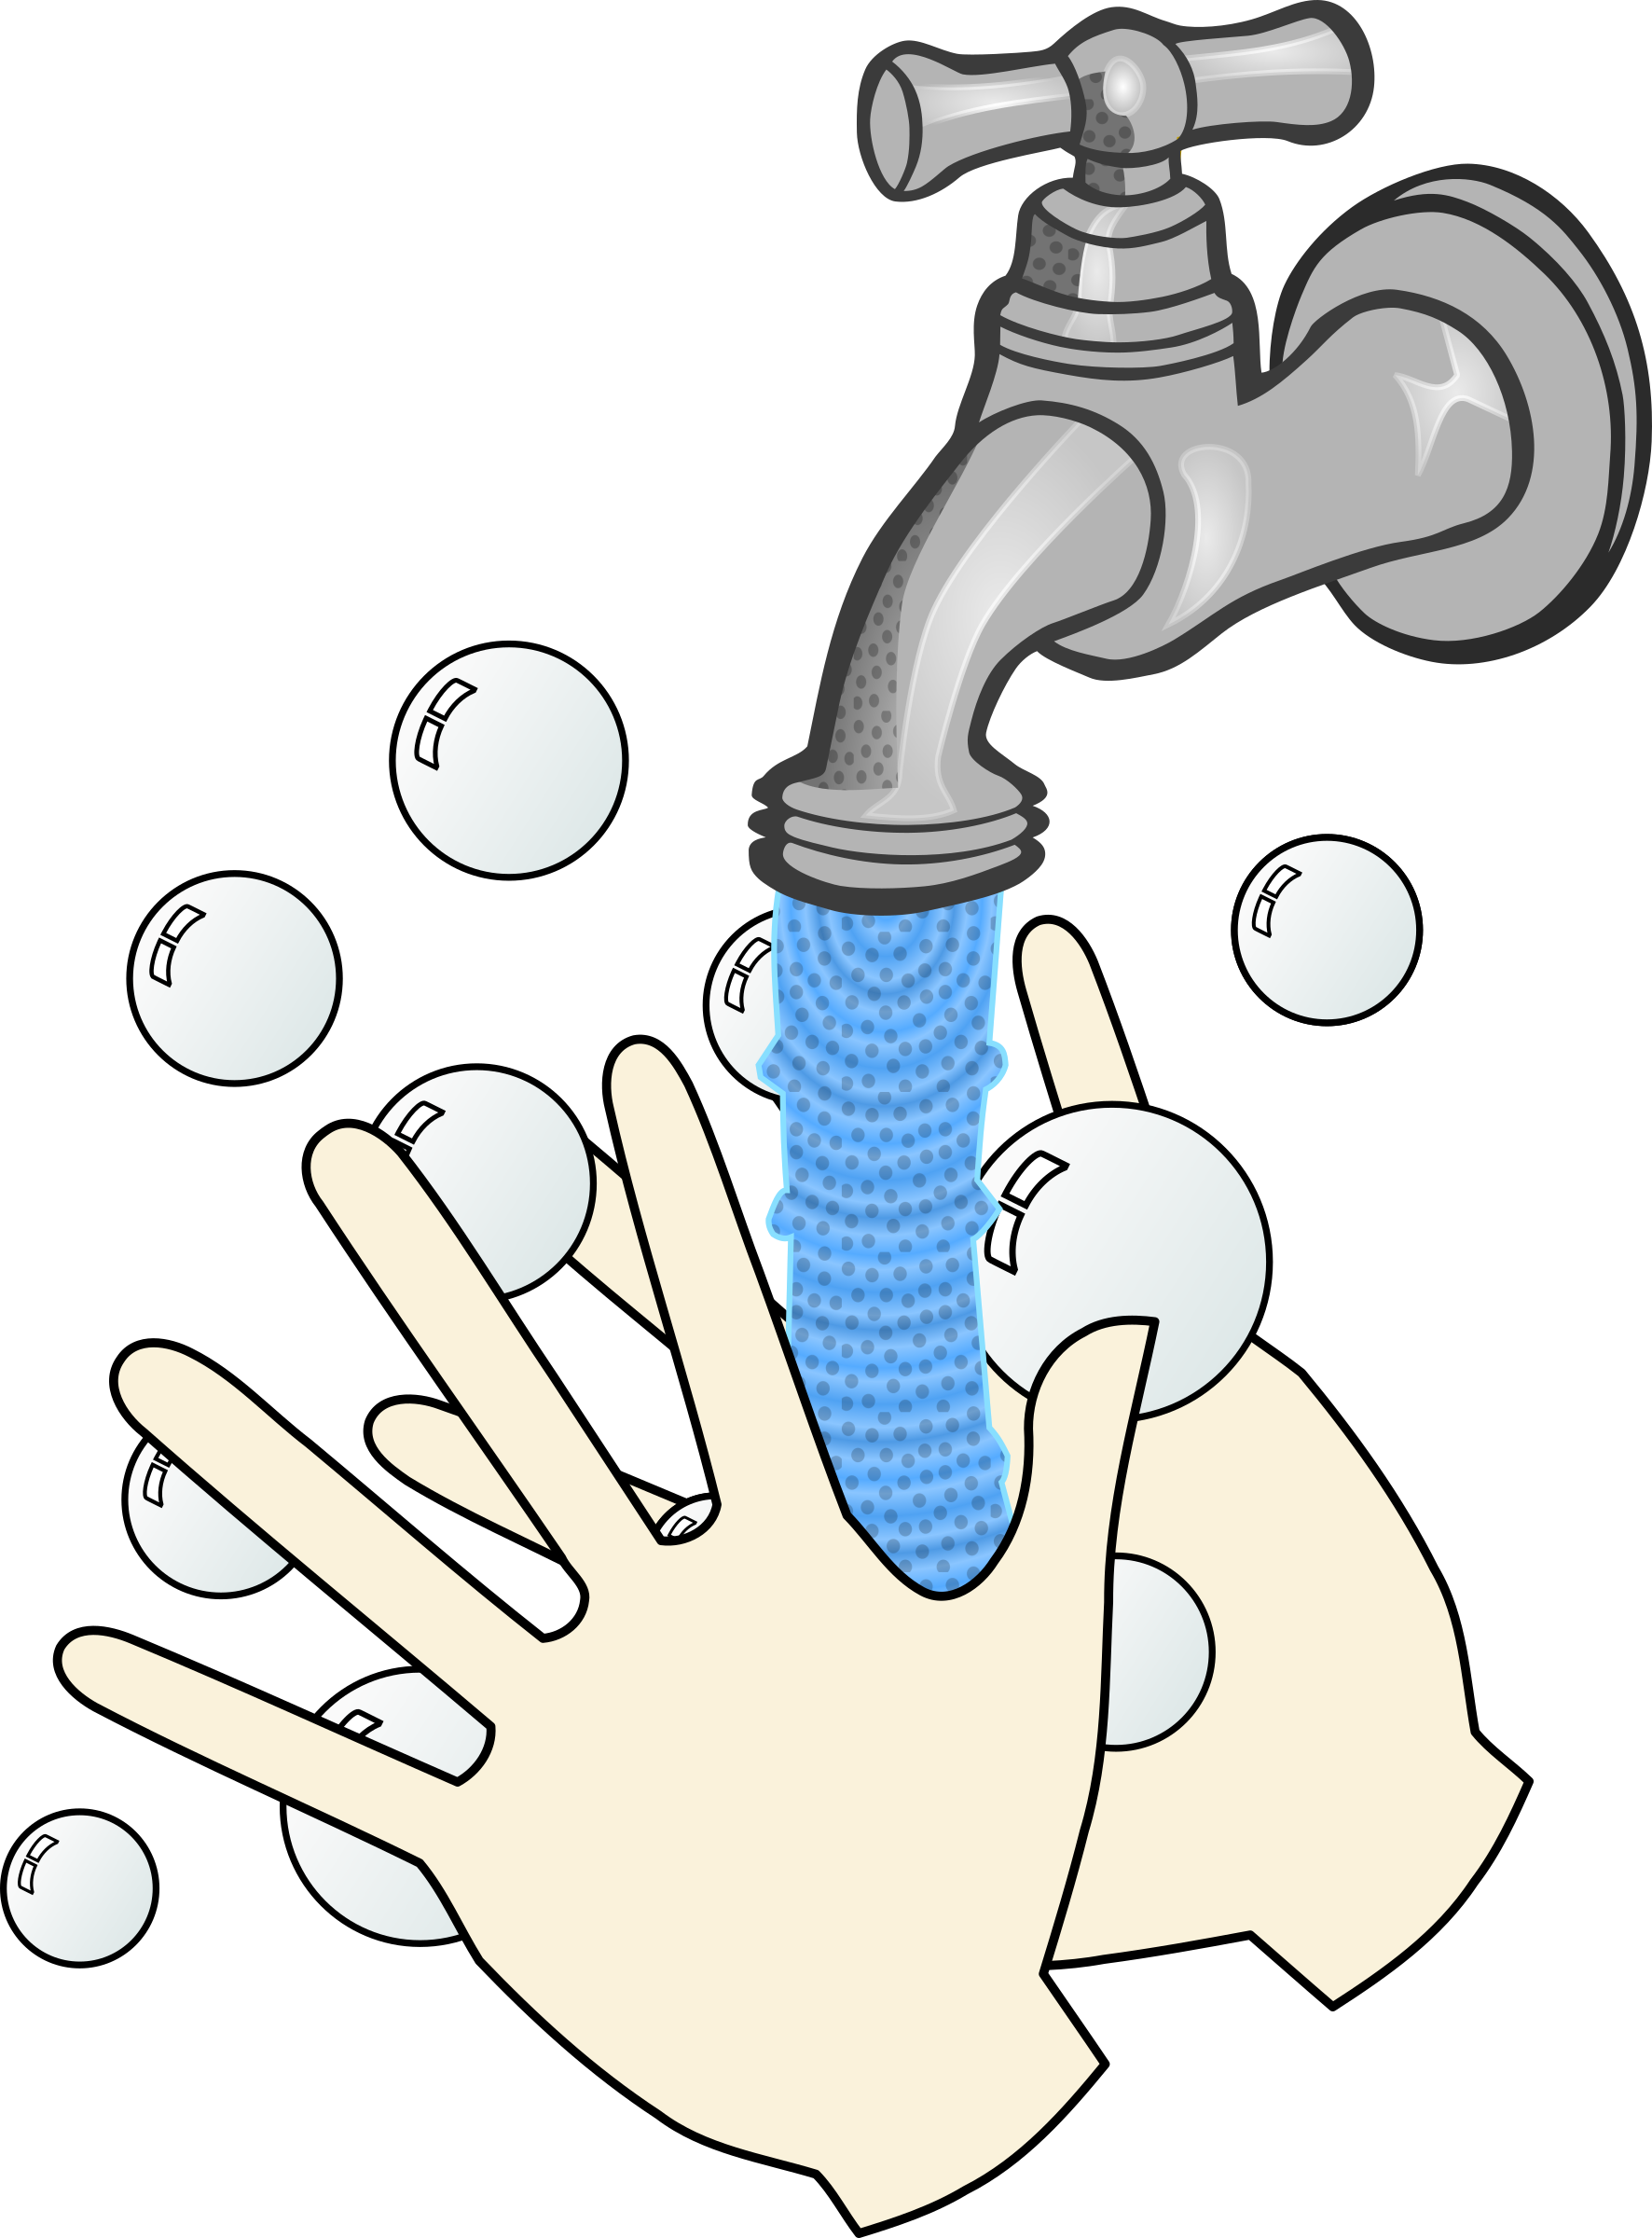 clip transparent library Washing hands with soap. Wet clipart wet rag